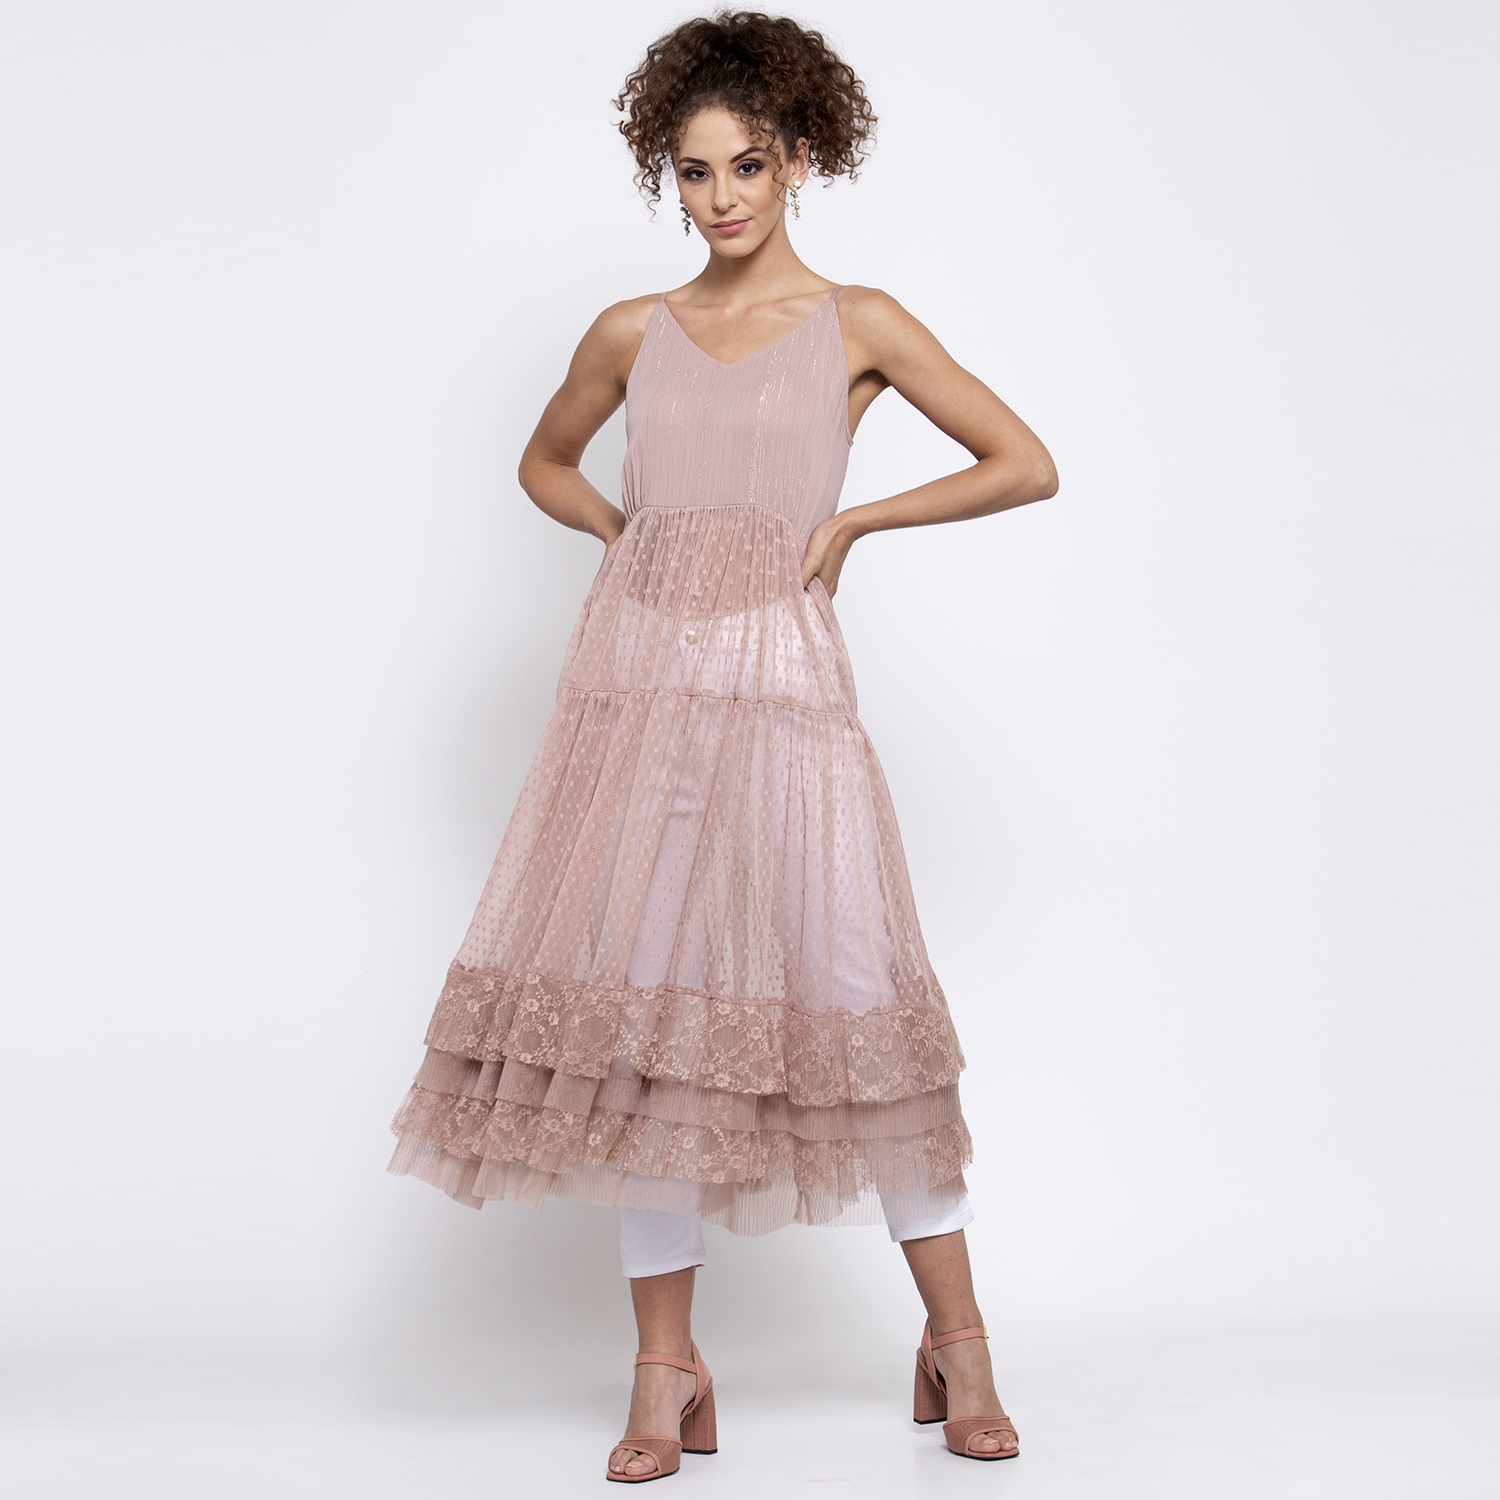 Pink dotted net dress with frill